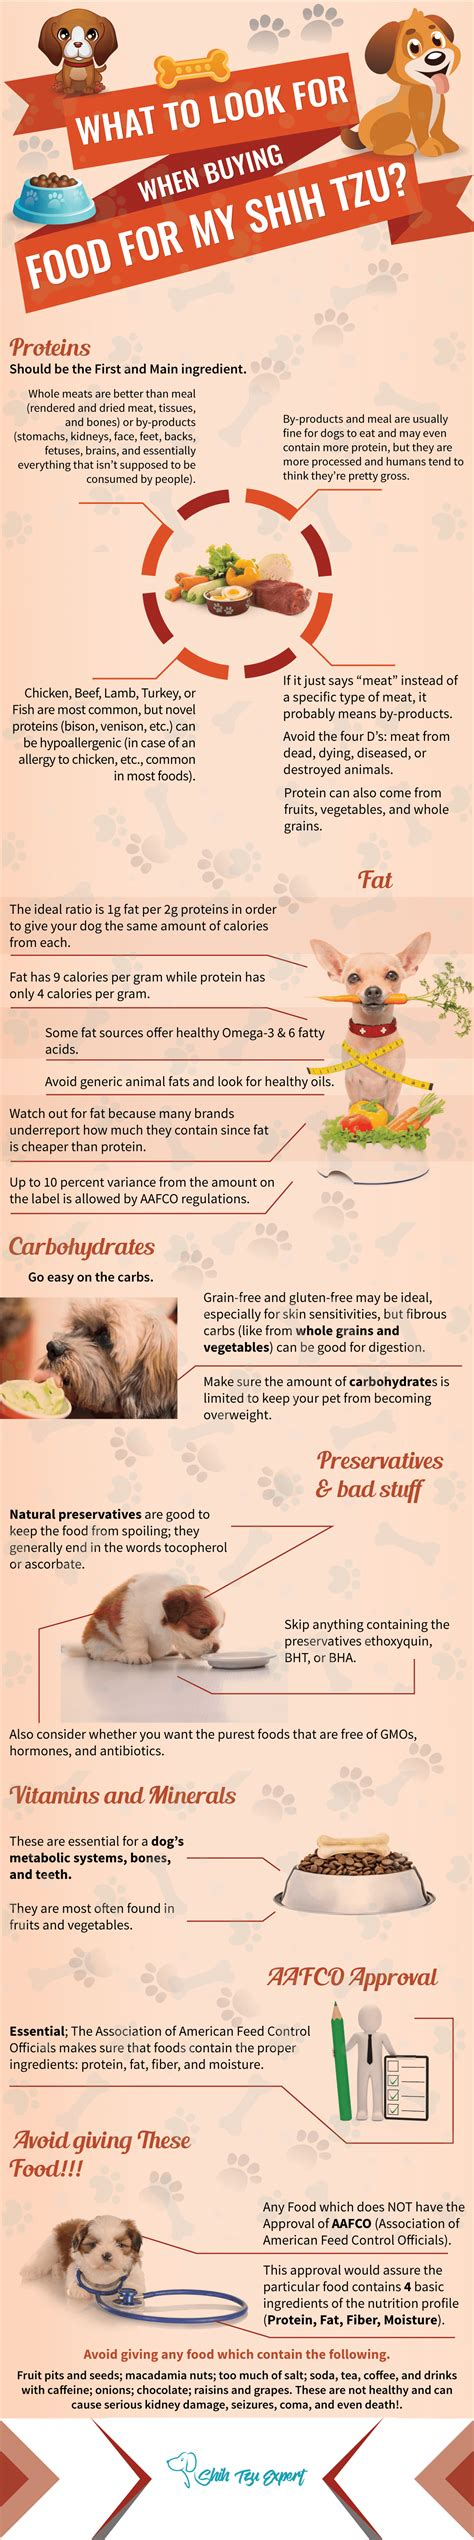 best puppy food shih tzu how to find the best food for shih tzu